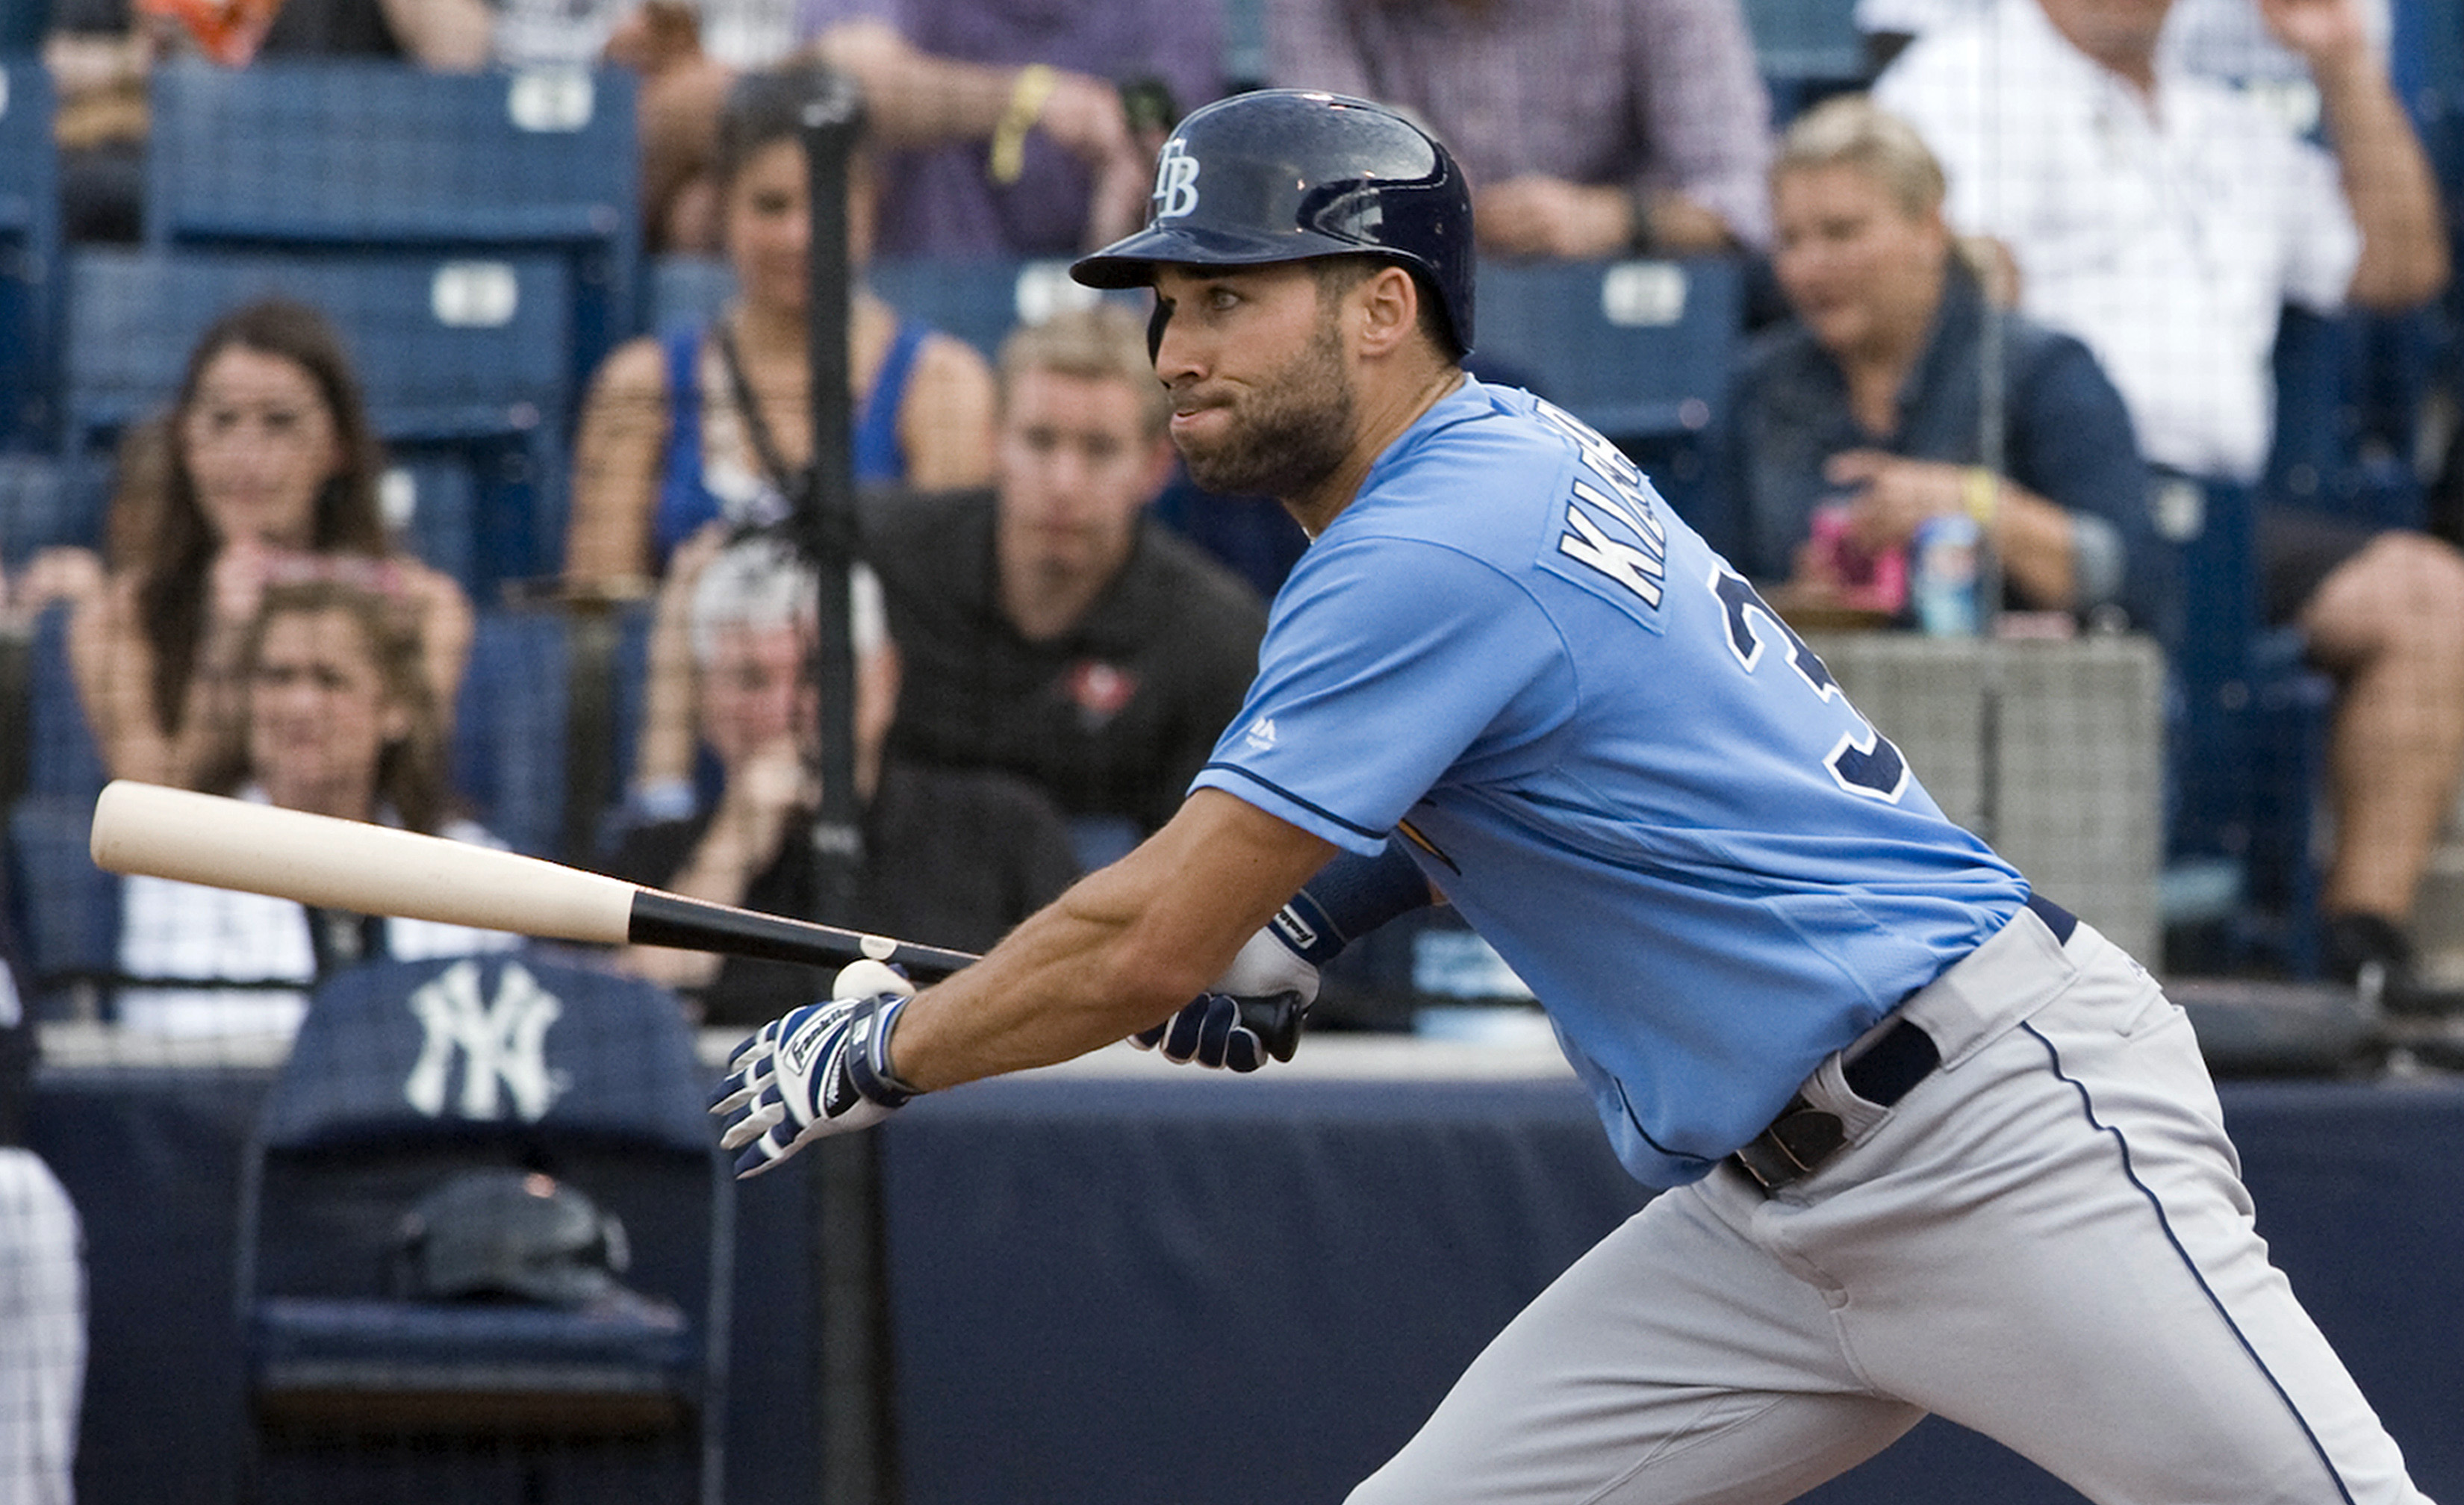 Tampa Bay Rays' Kevin Kiermaier watches his RBI single off New York Yankees starter CC Sabathia during the second inning of a spring training baseball game Thursday, March 24, 2016, in Tampa, Fla. (AP Photo/Steve Nesius)